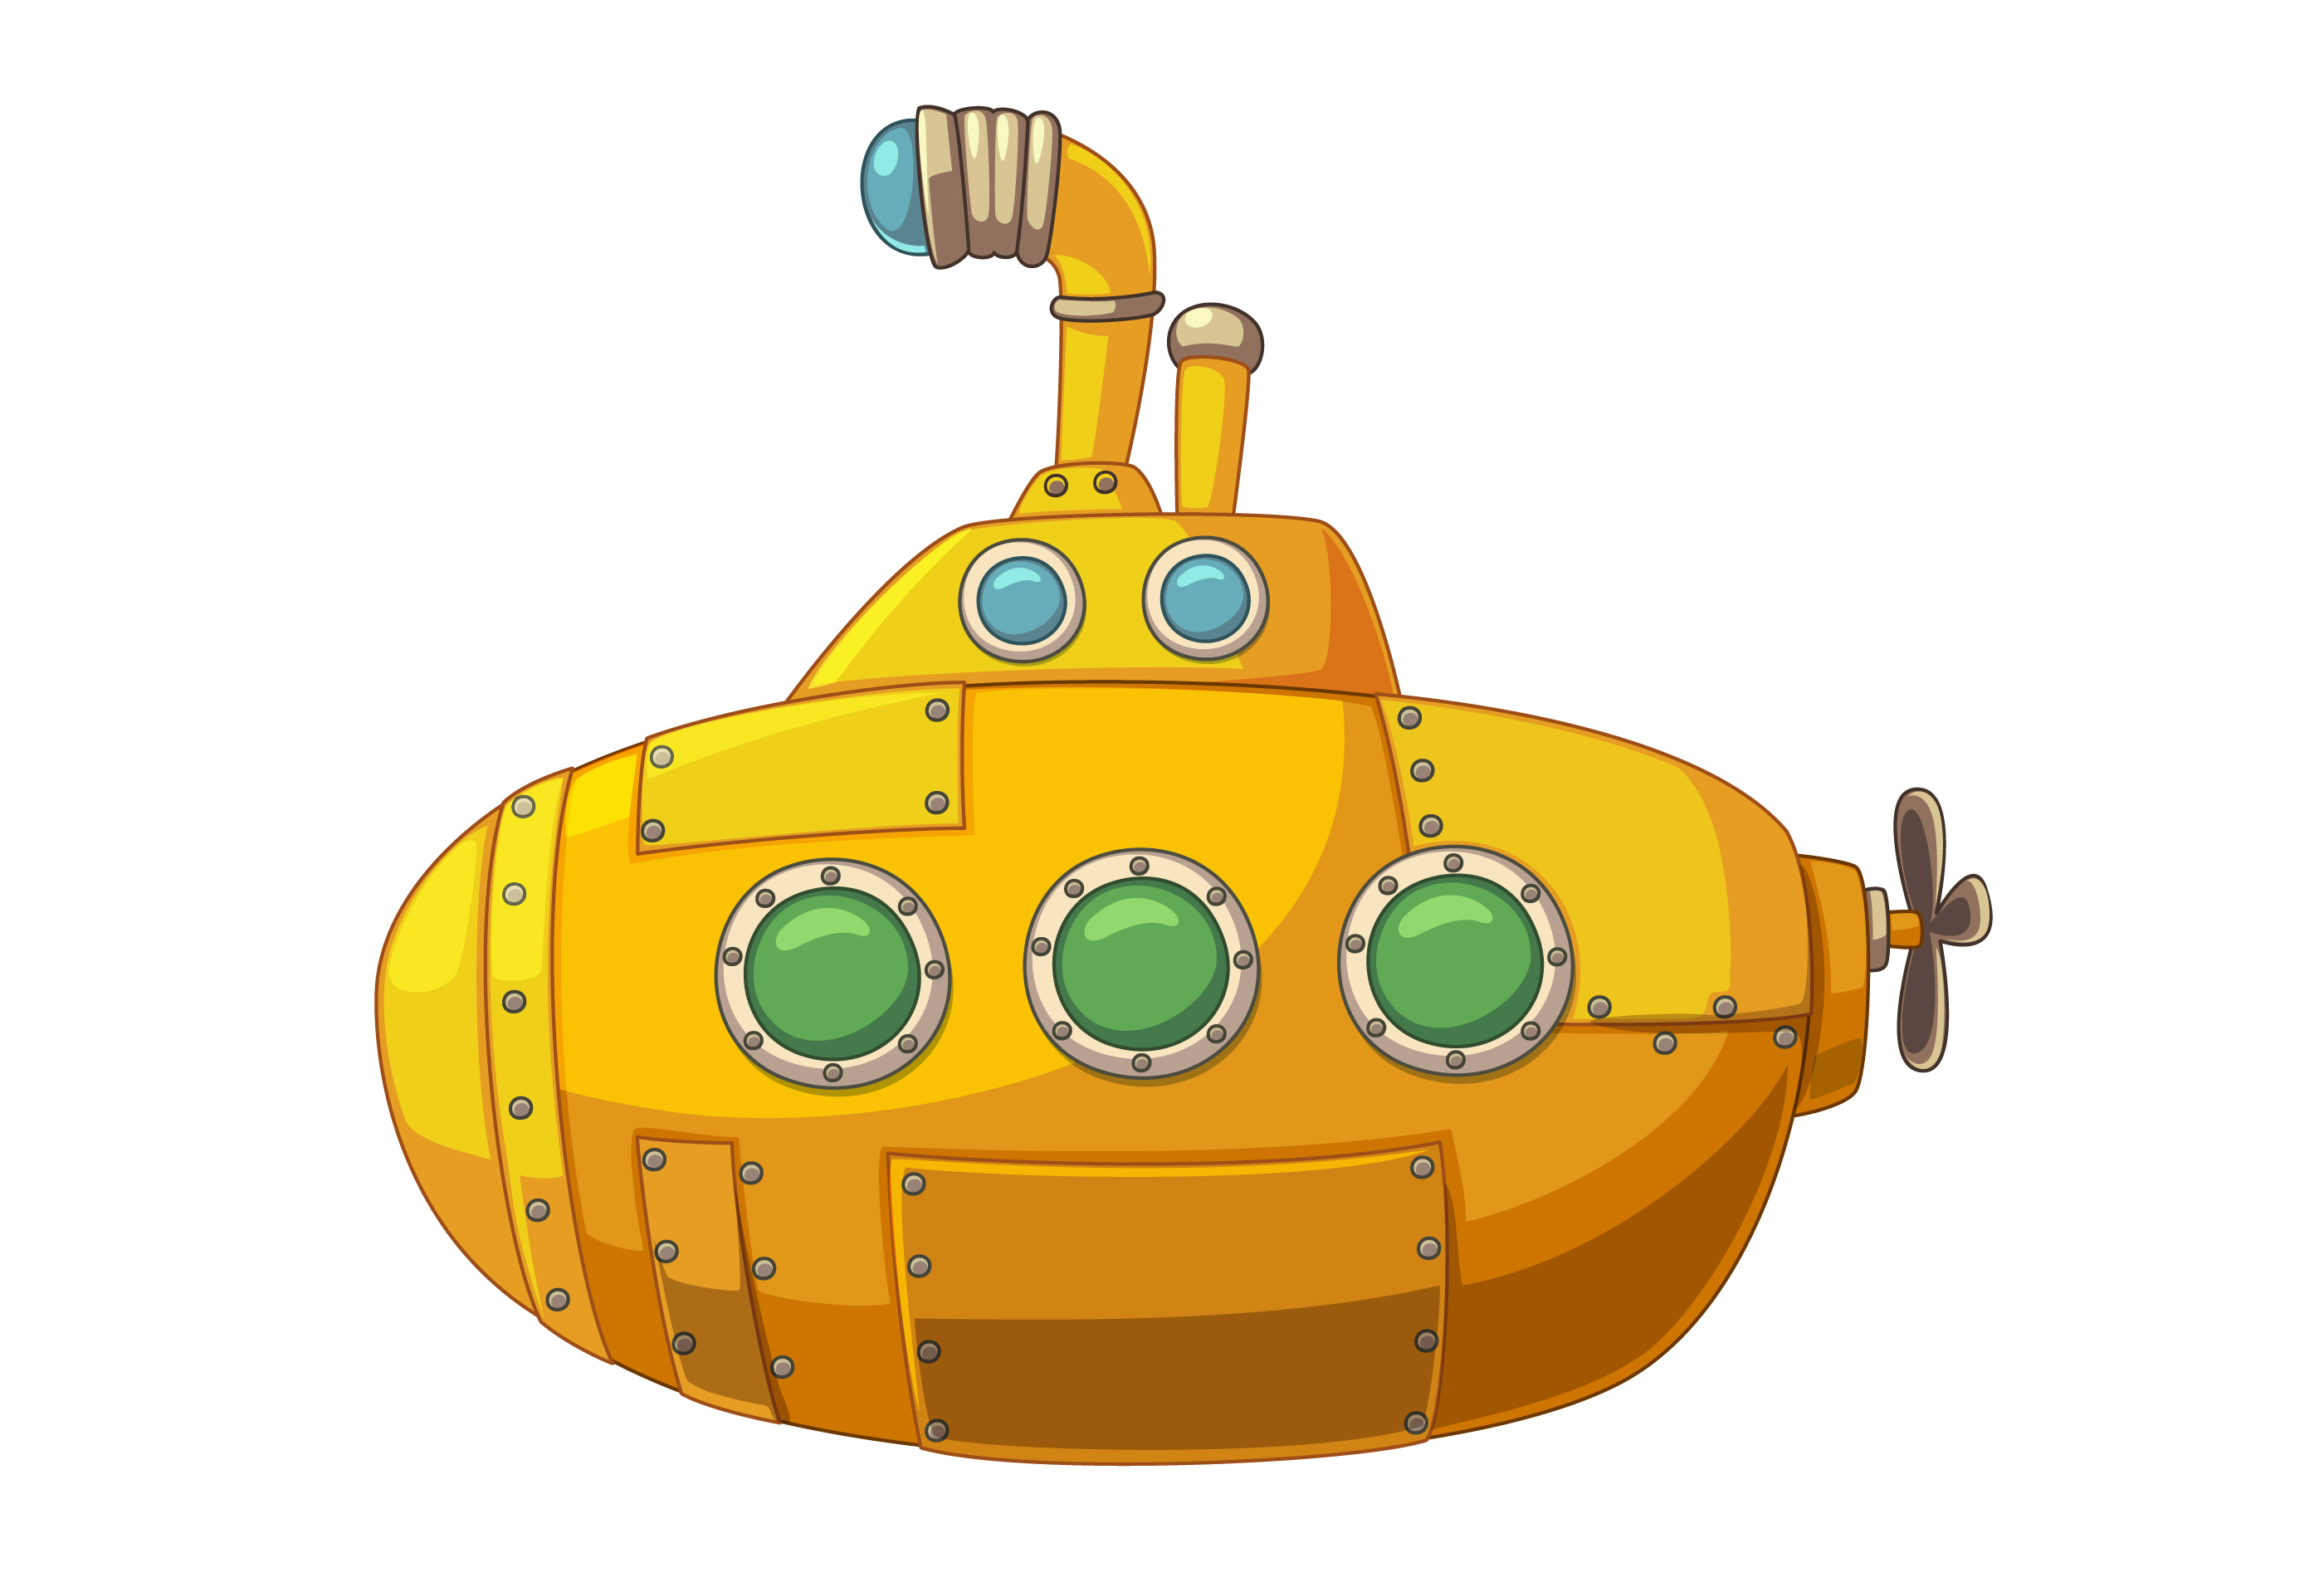 Deep submergence. Cute yellow submarine download